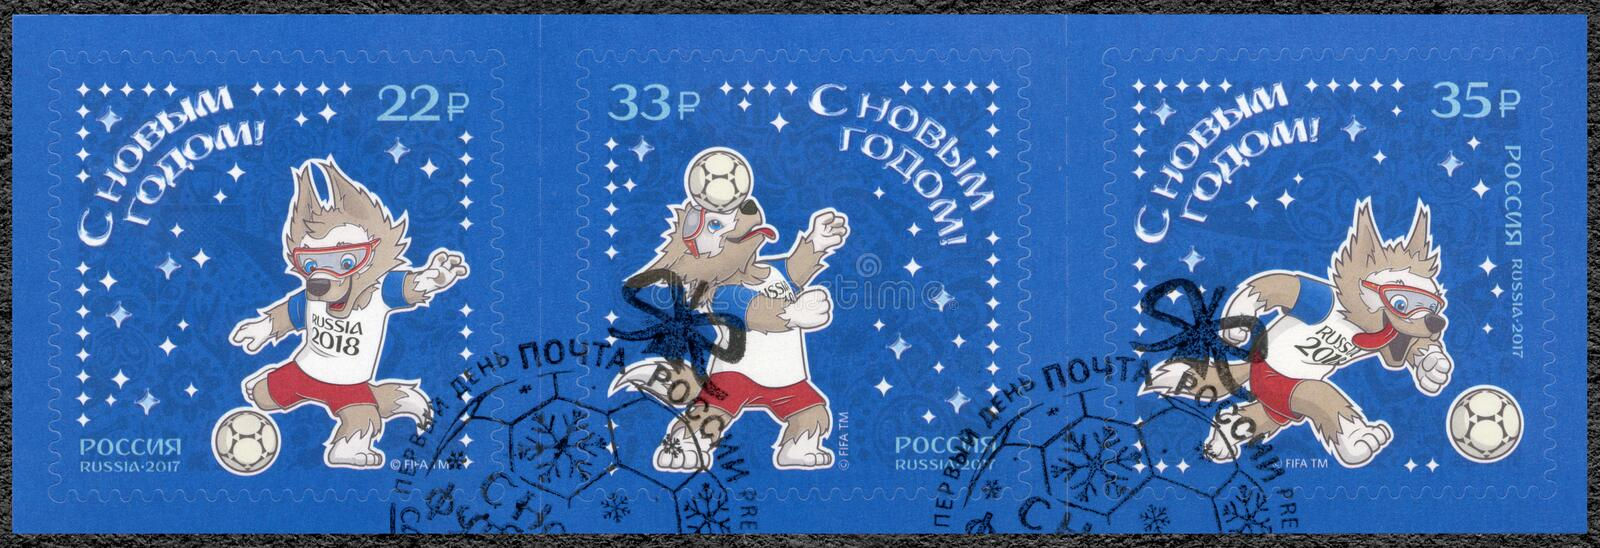 RÚSSIA - 2017: mostra Mascot Wolf, 2018 na Copa do Mundo Rússia, Happy New Year, 2017 imagem de stock royalty free